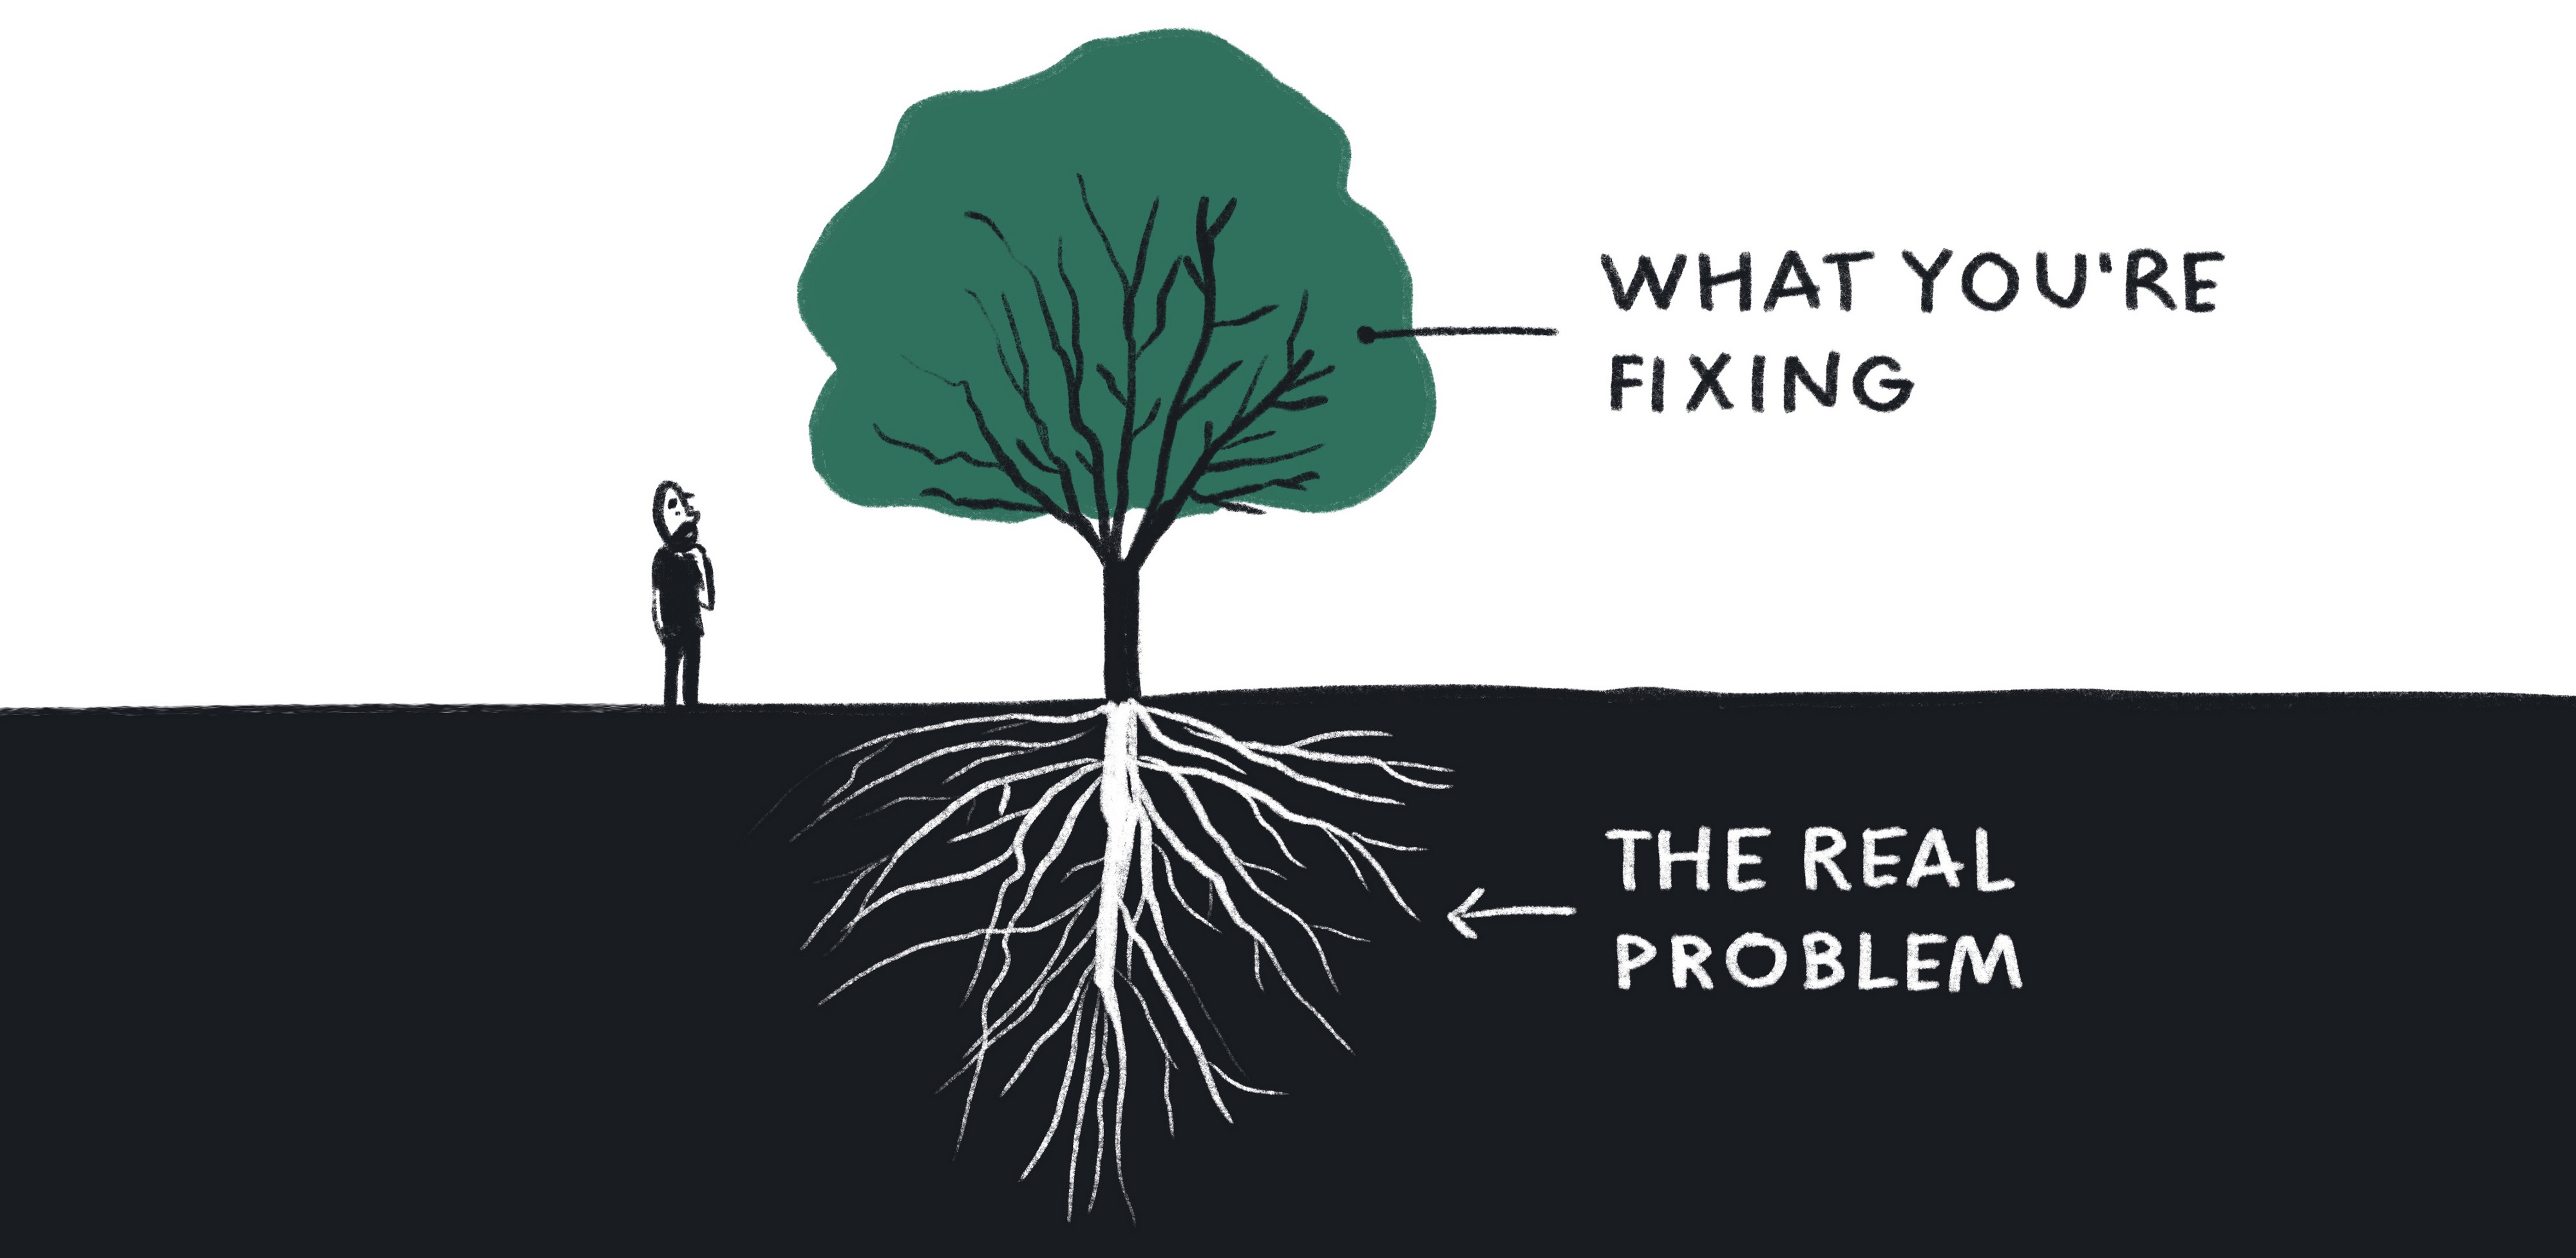 A tree—representing what you're trying to fix, and its roots representing the real problem.